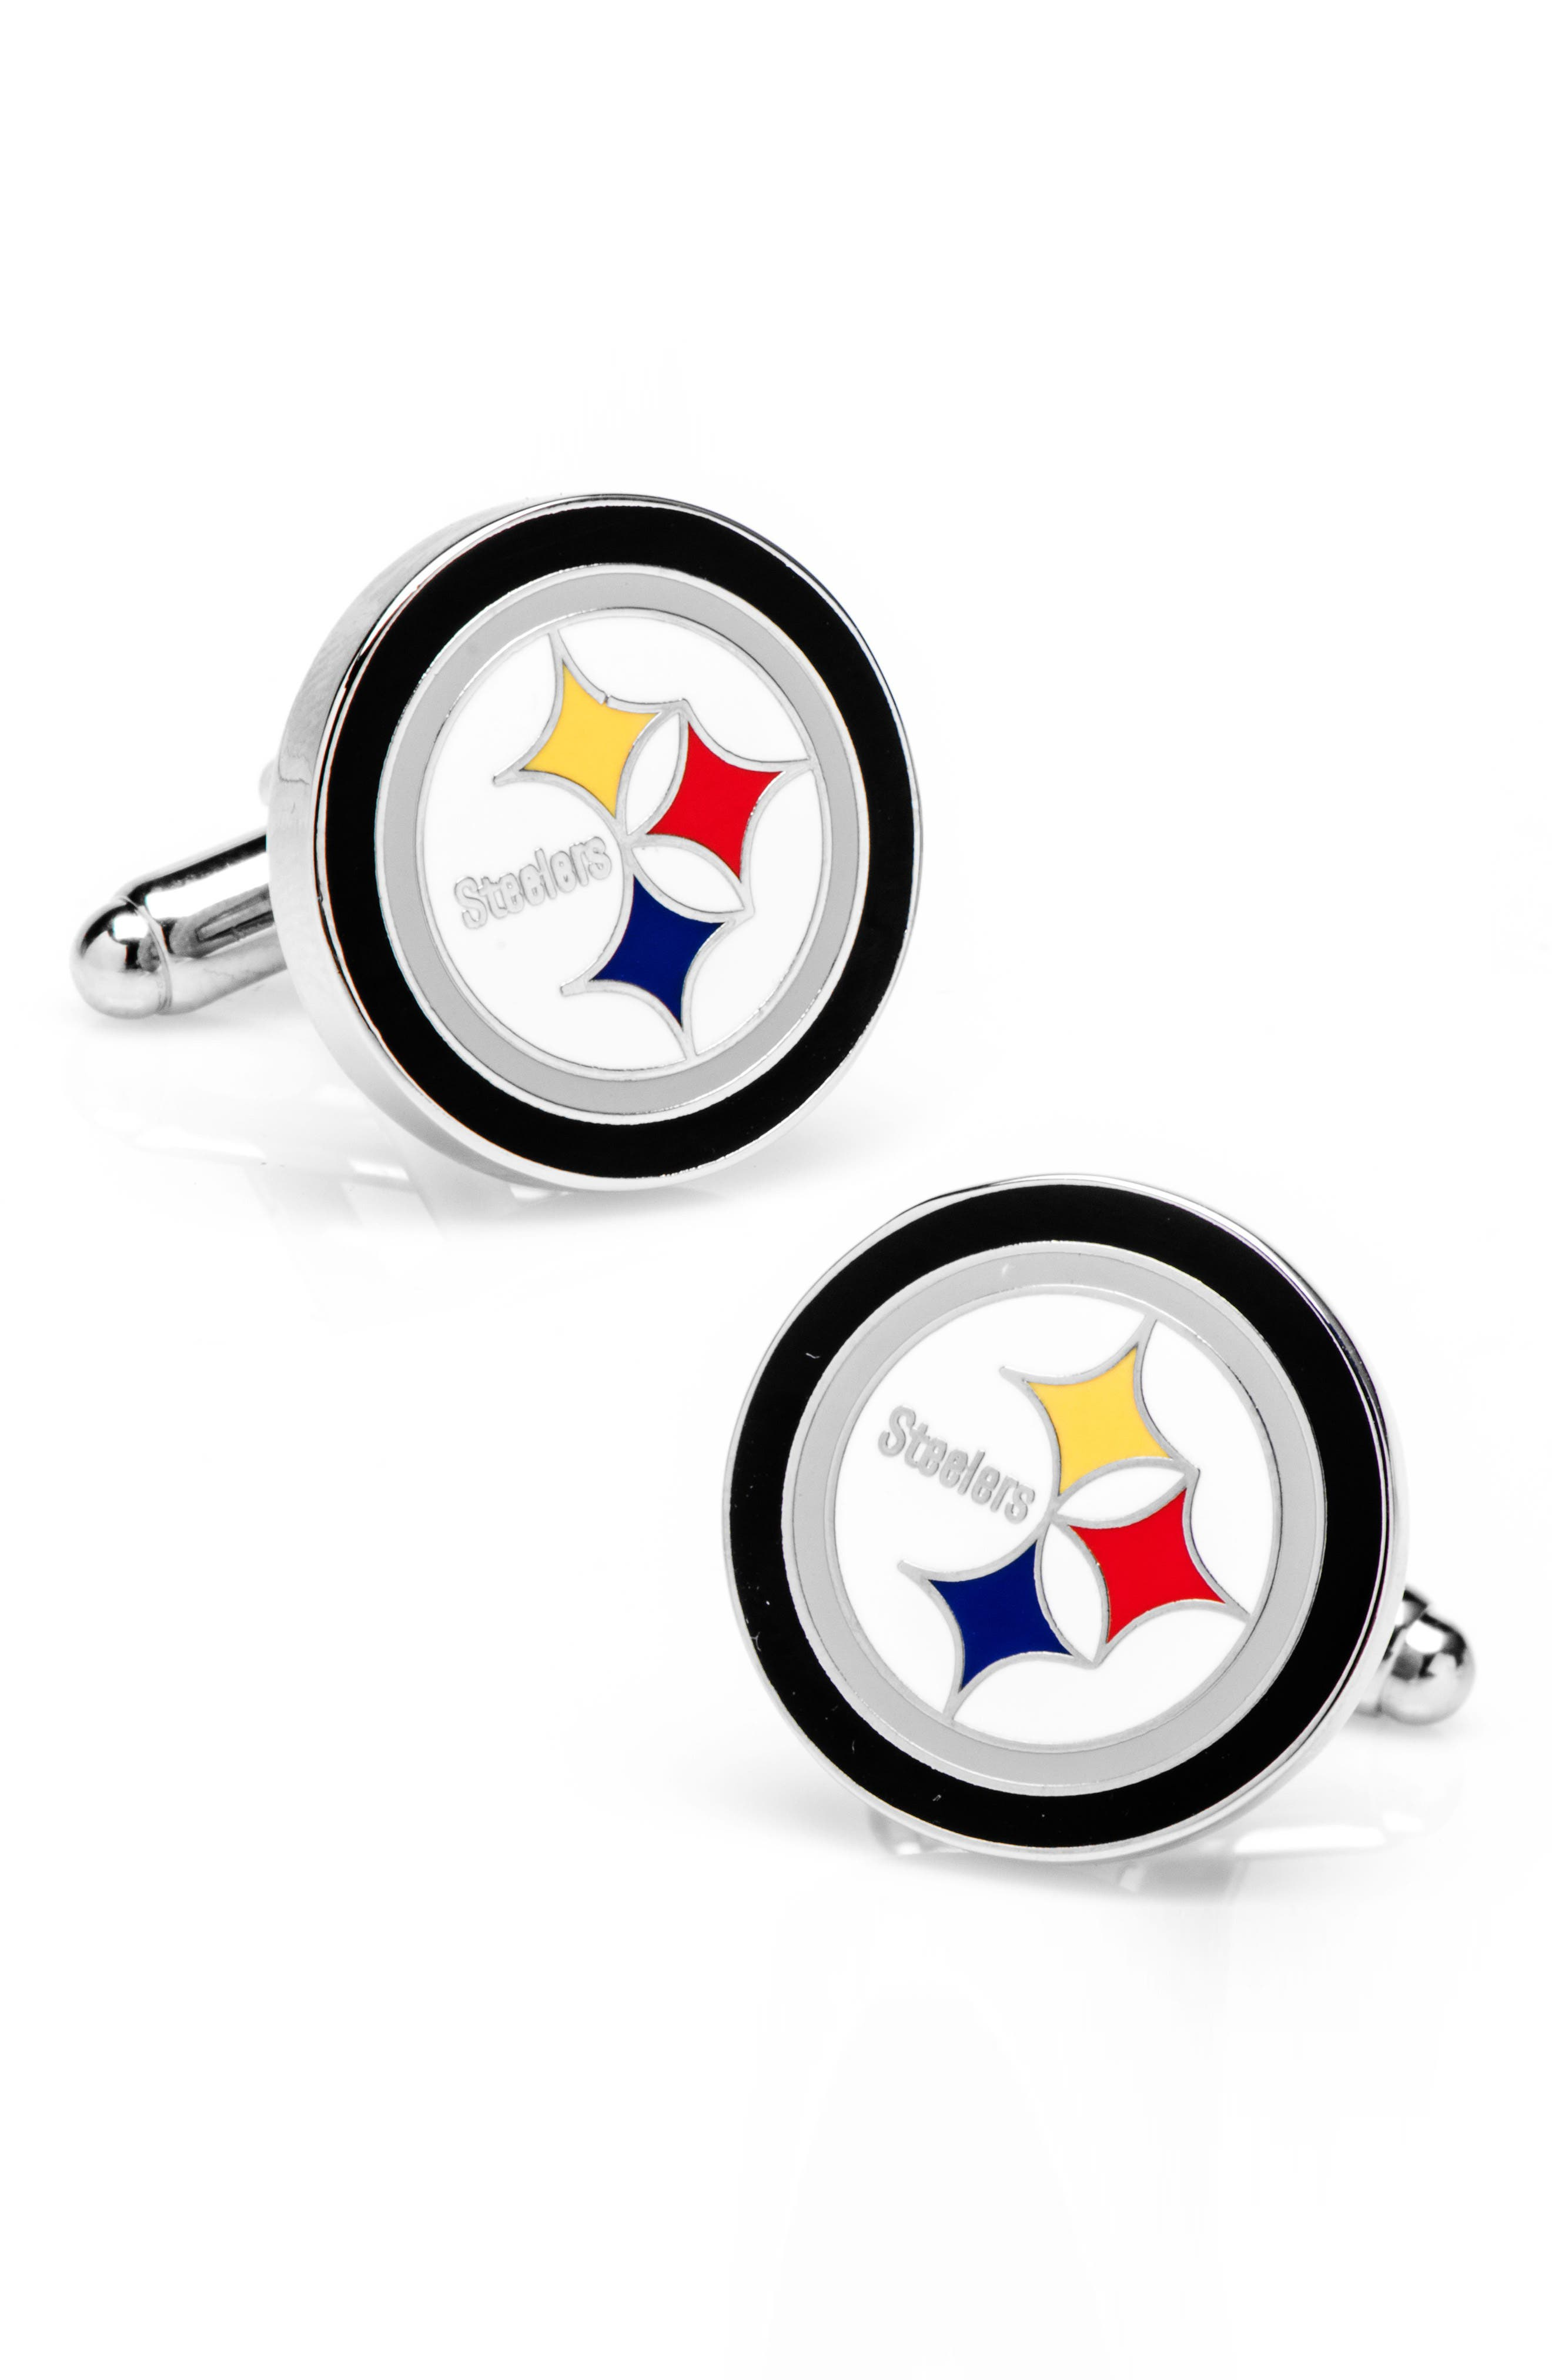 Wear your heart on your sleeve with classic team cuff links with tasteful appeal. Style Name: Cufflinks, Inc. Pittsburgh Steelers Cuff Links. Style Number: 5353932. Available in stores.